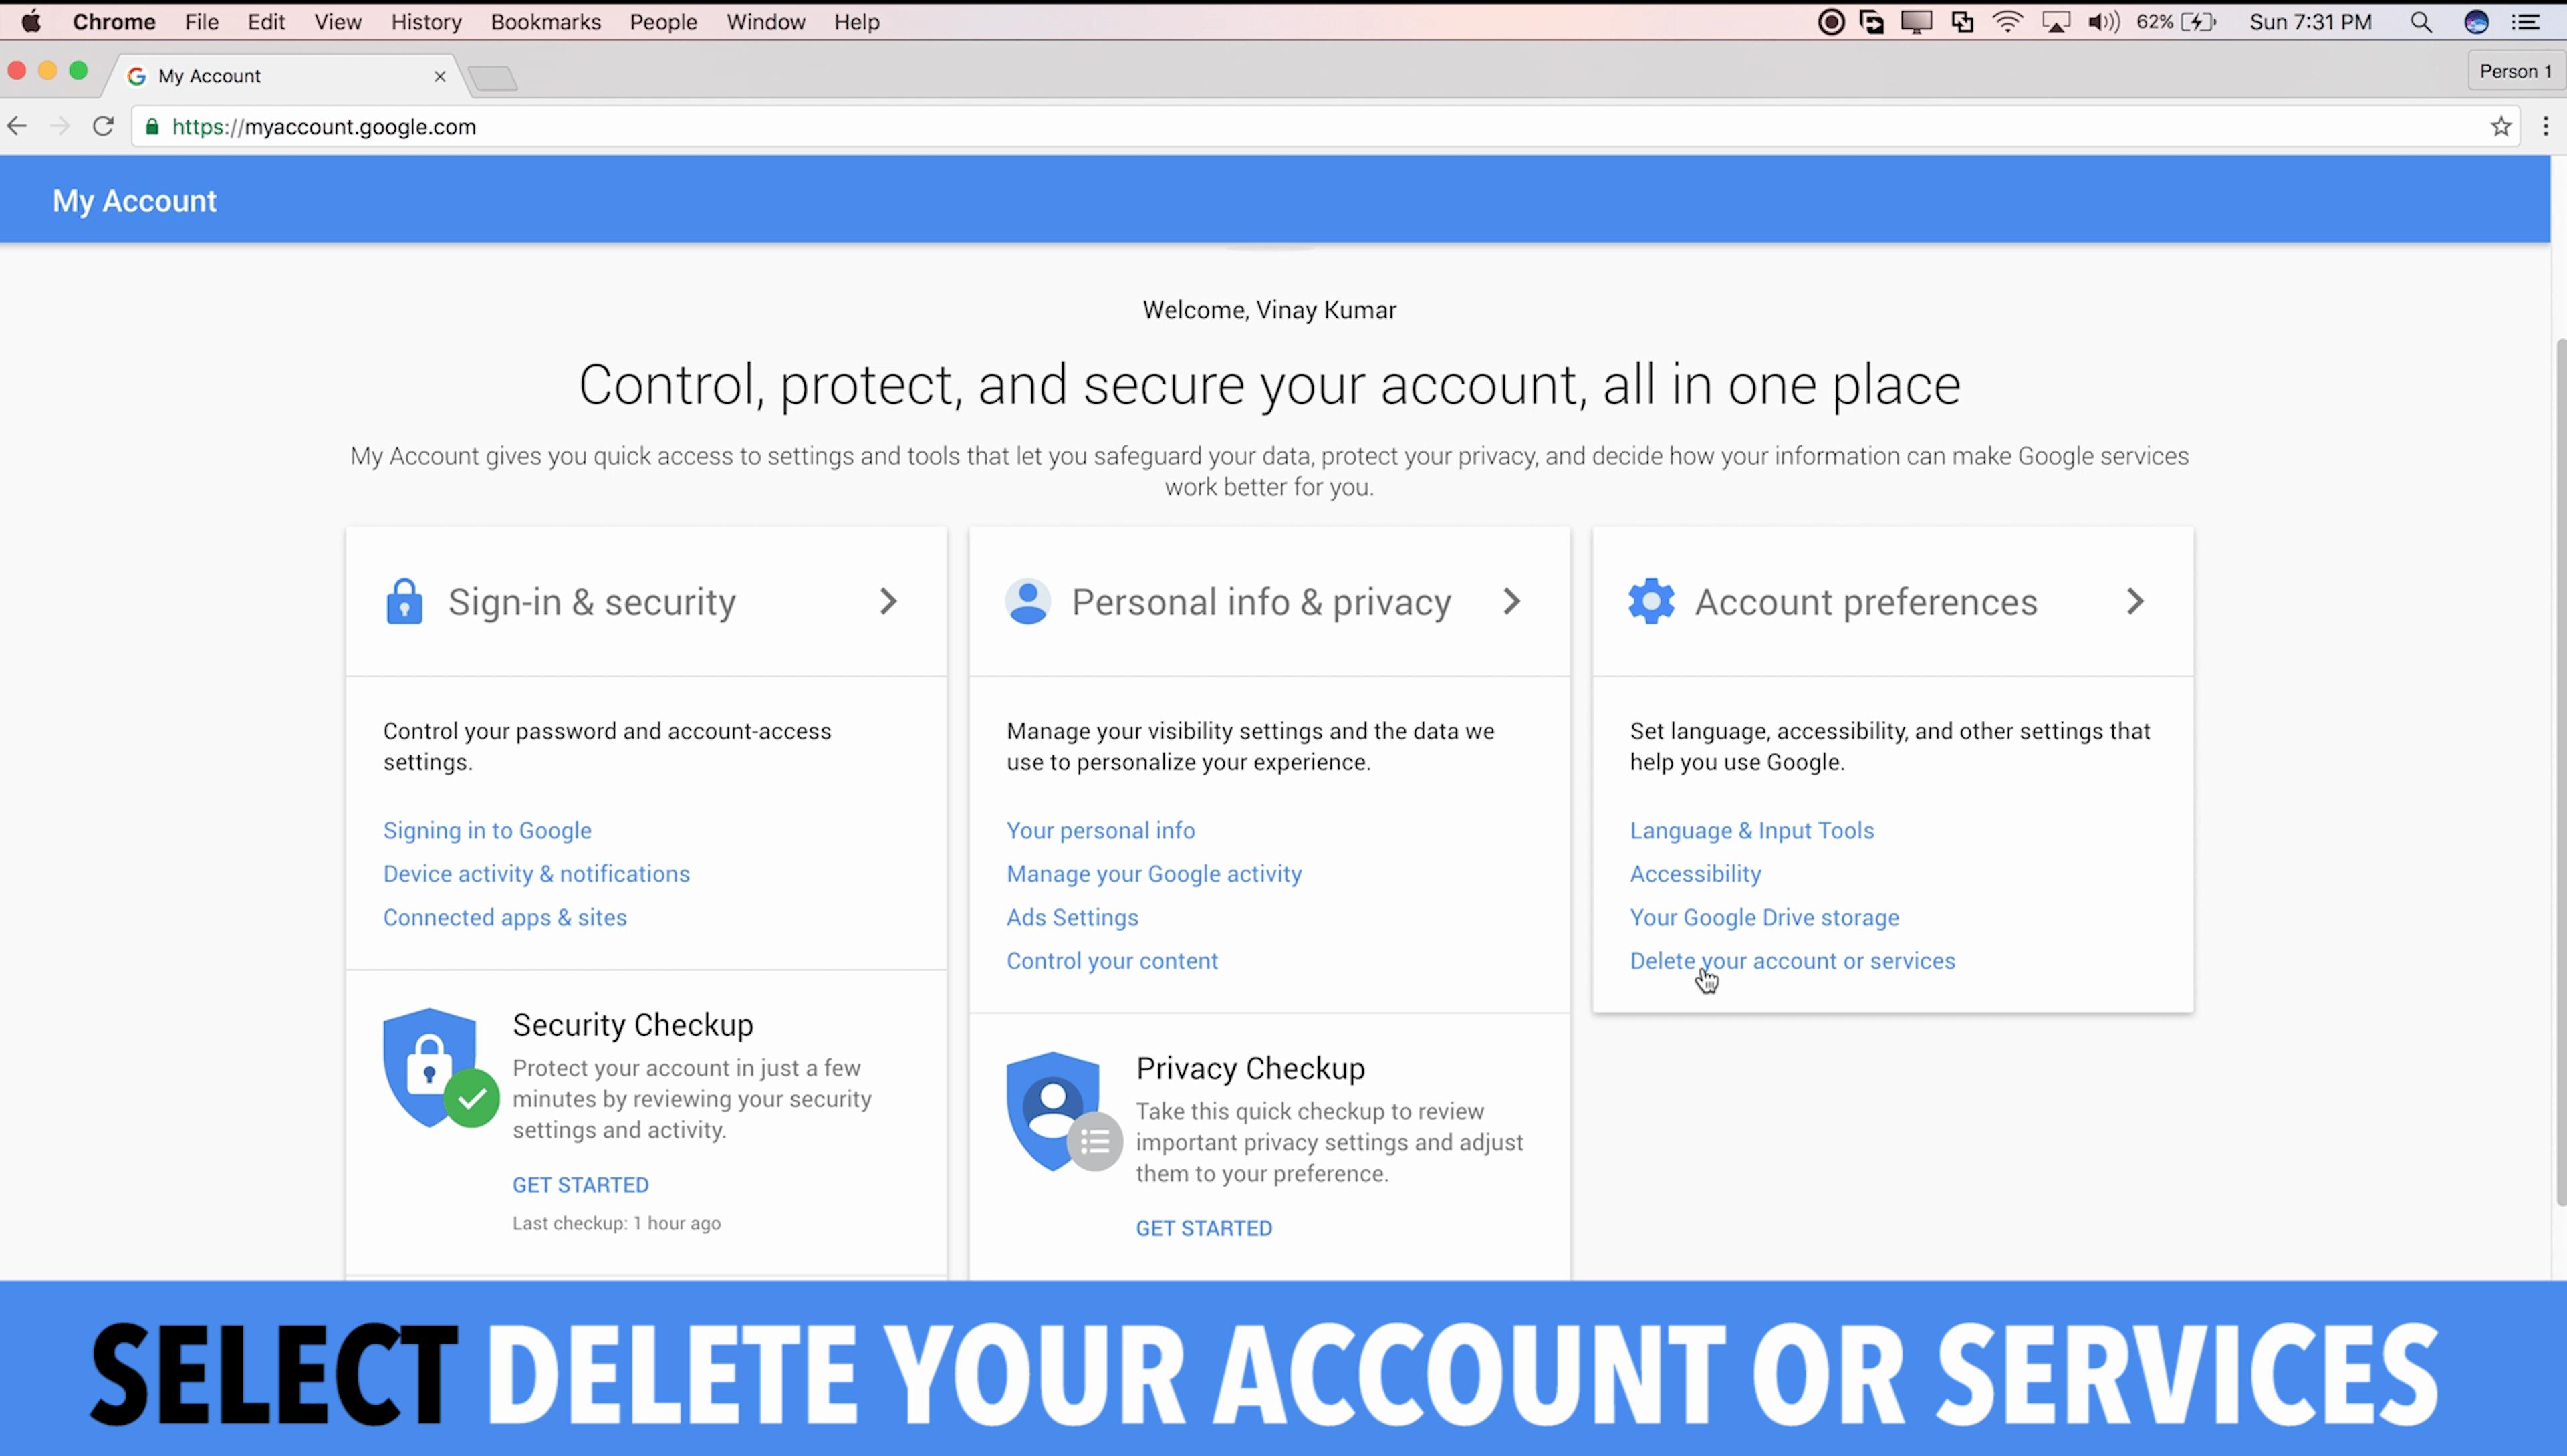 Delete Your Account or Services in Google